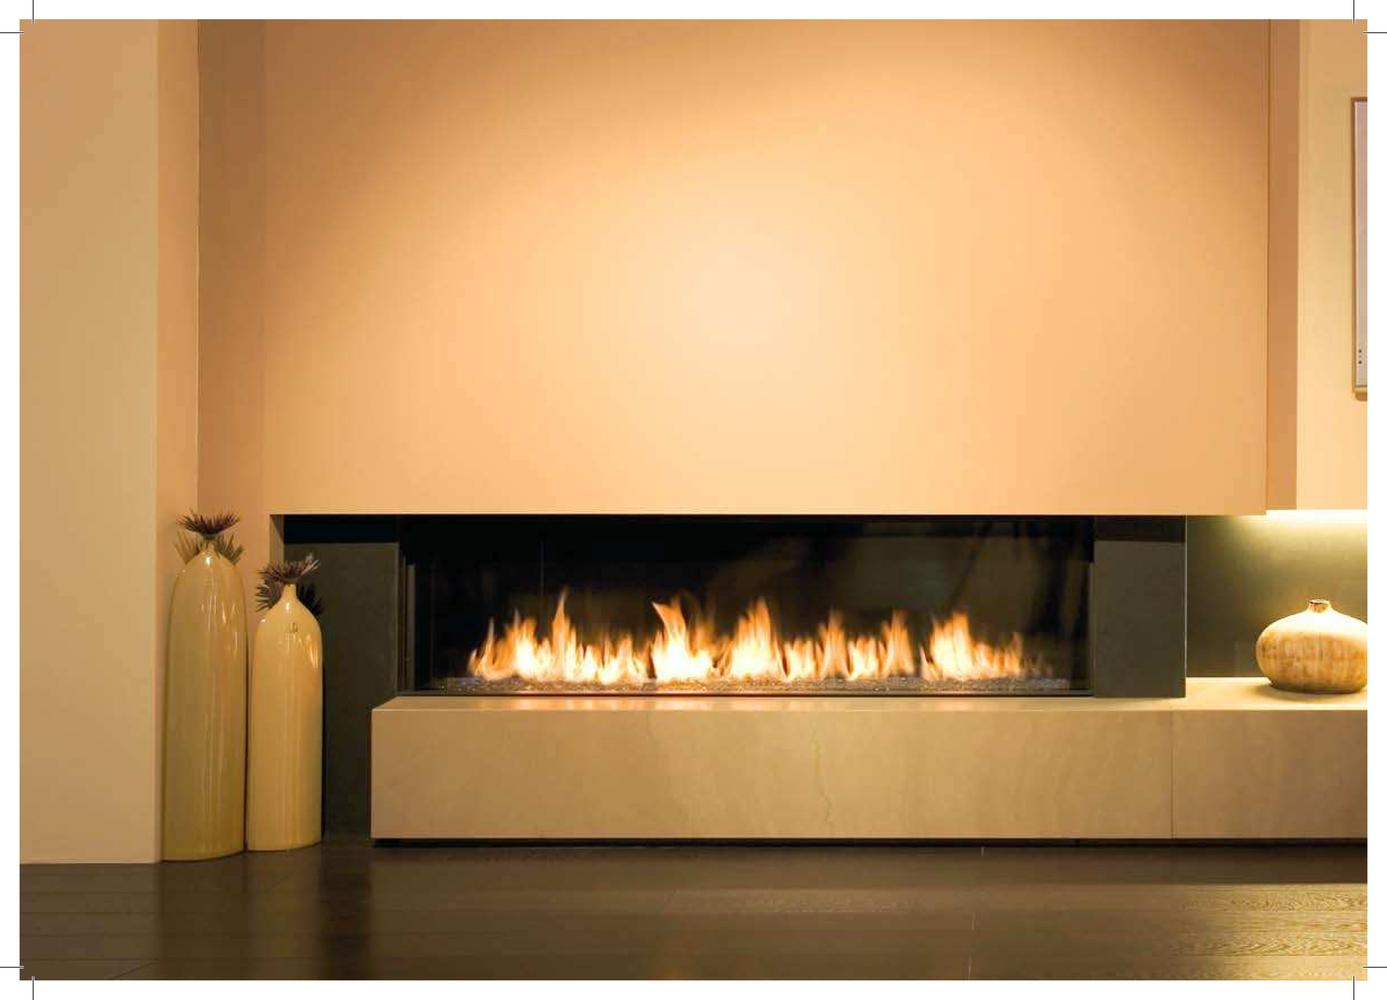 Design gas or ethanol fireplace